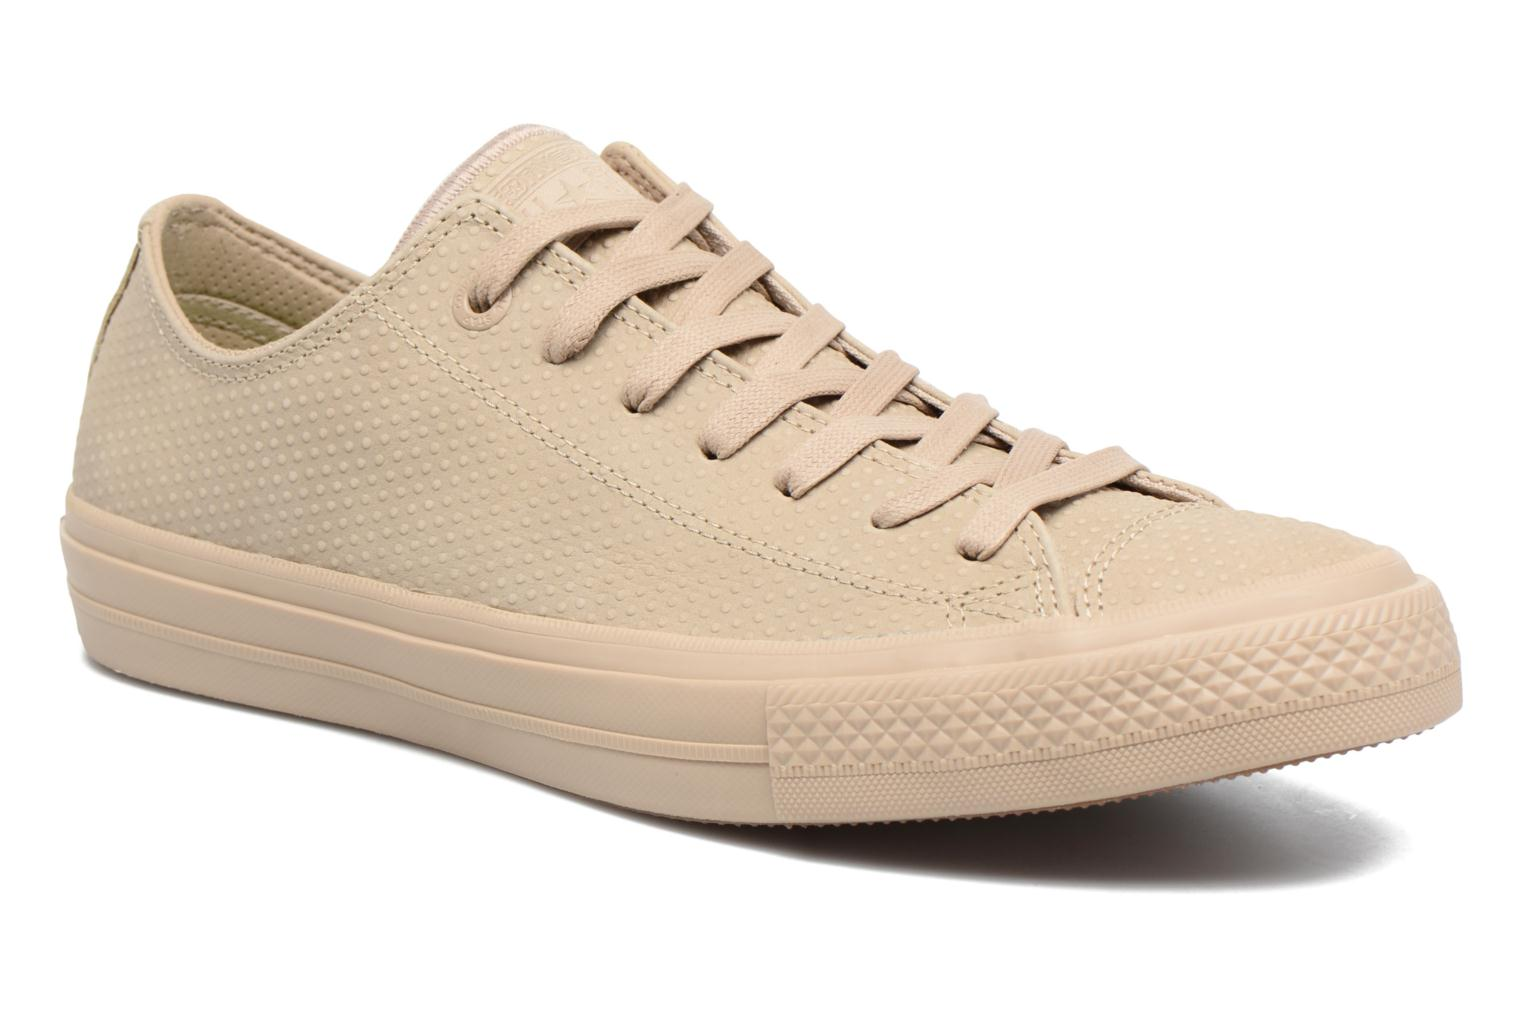 12 UK Skechers Elite Flex-Hartnell Converse Chaussures All Star B Cuir Crème Converse soldes Superfit Marley zirMDKGh